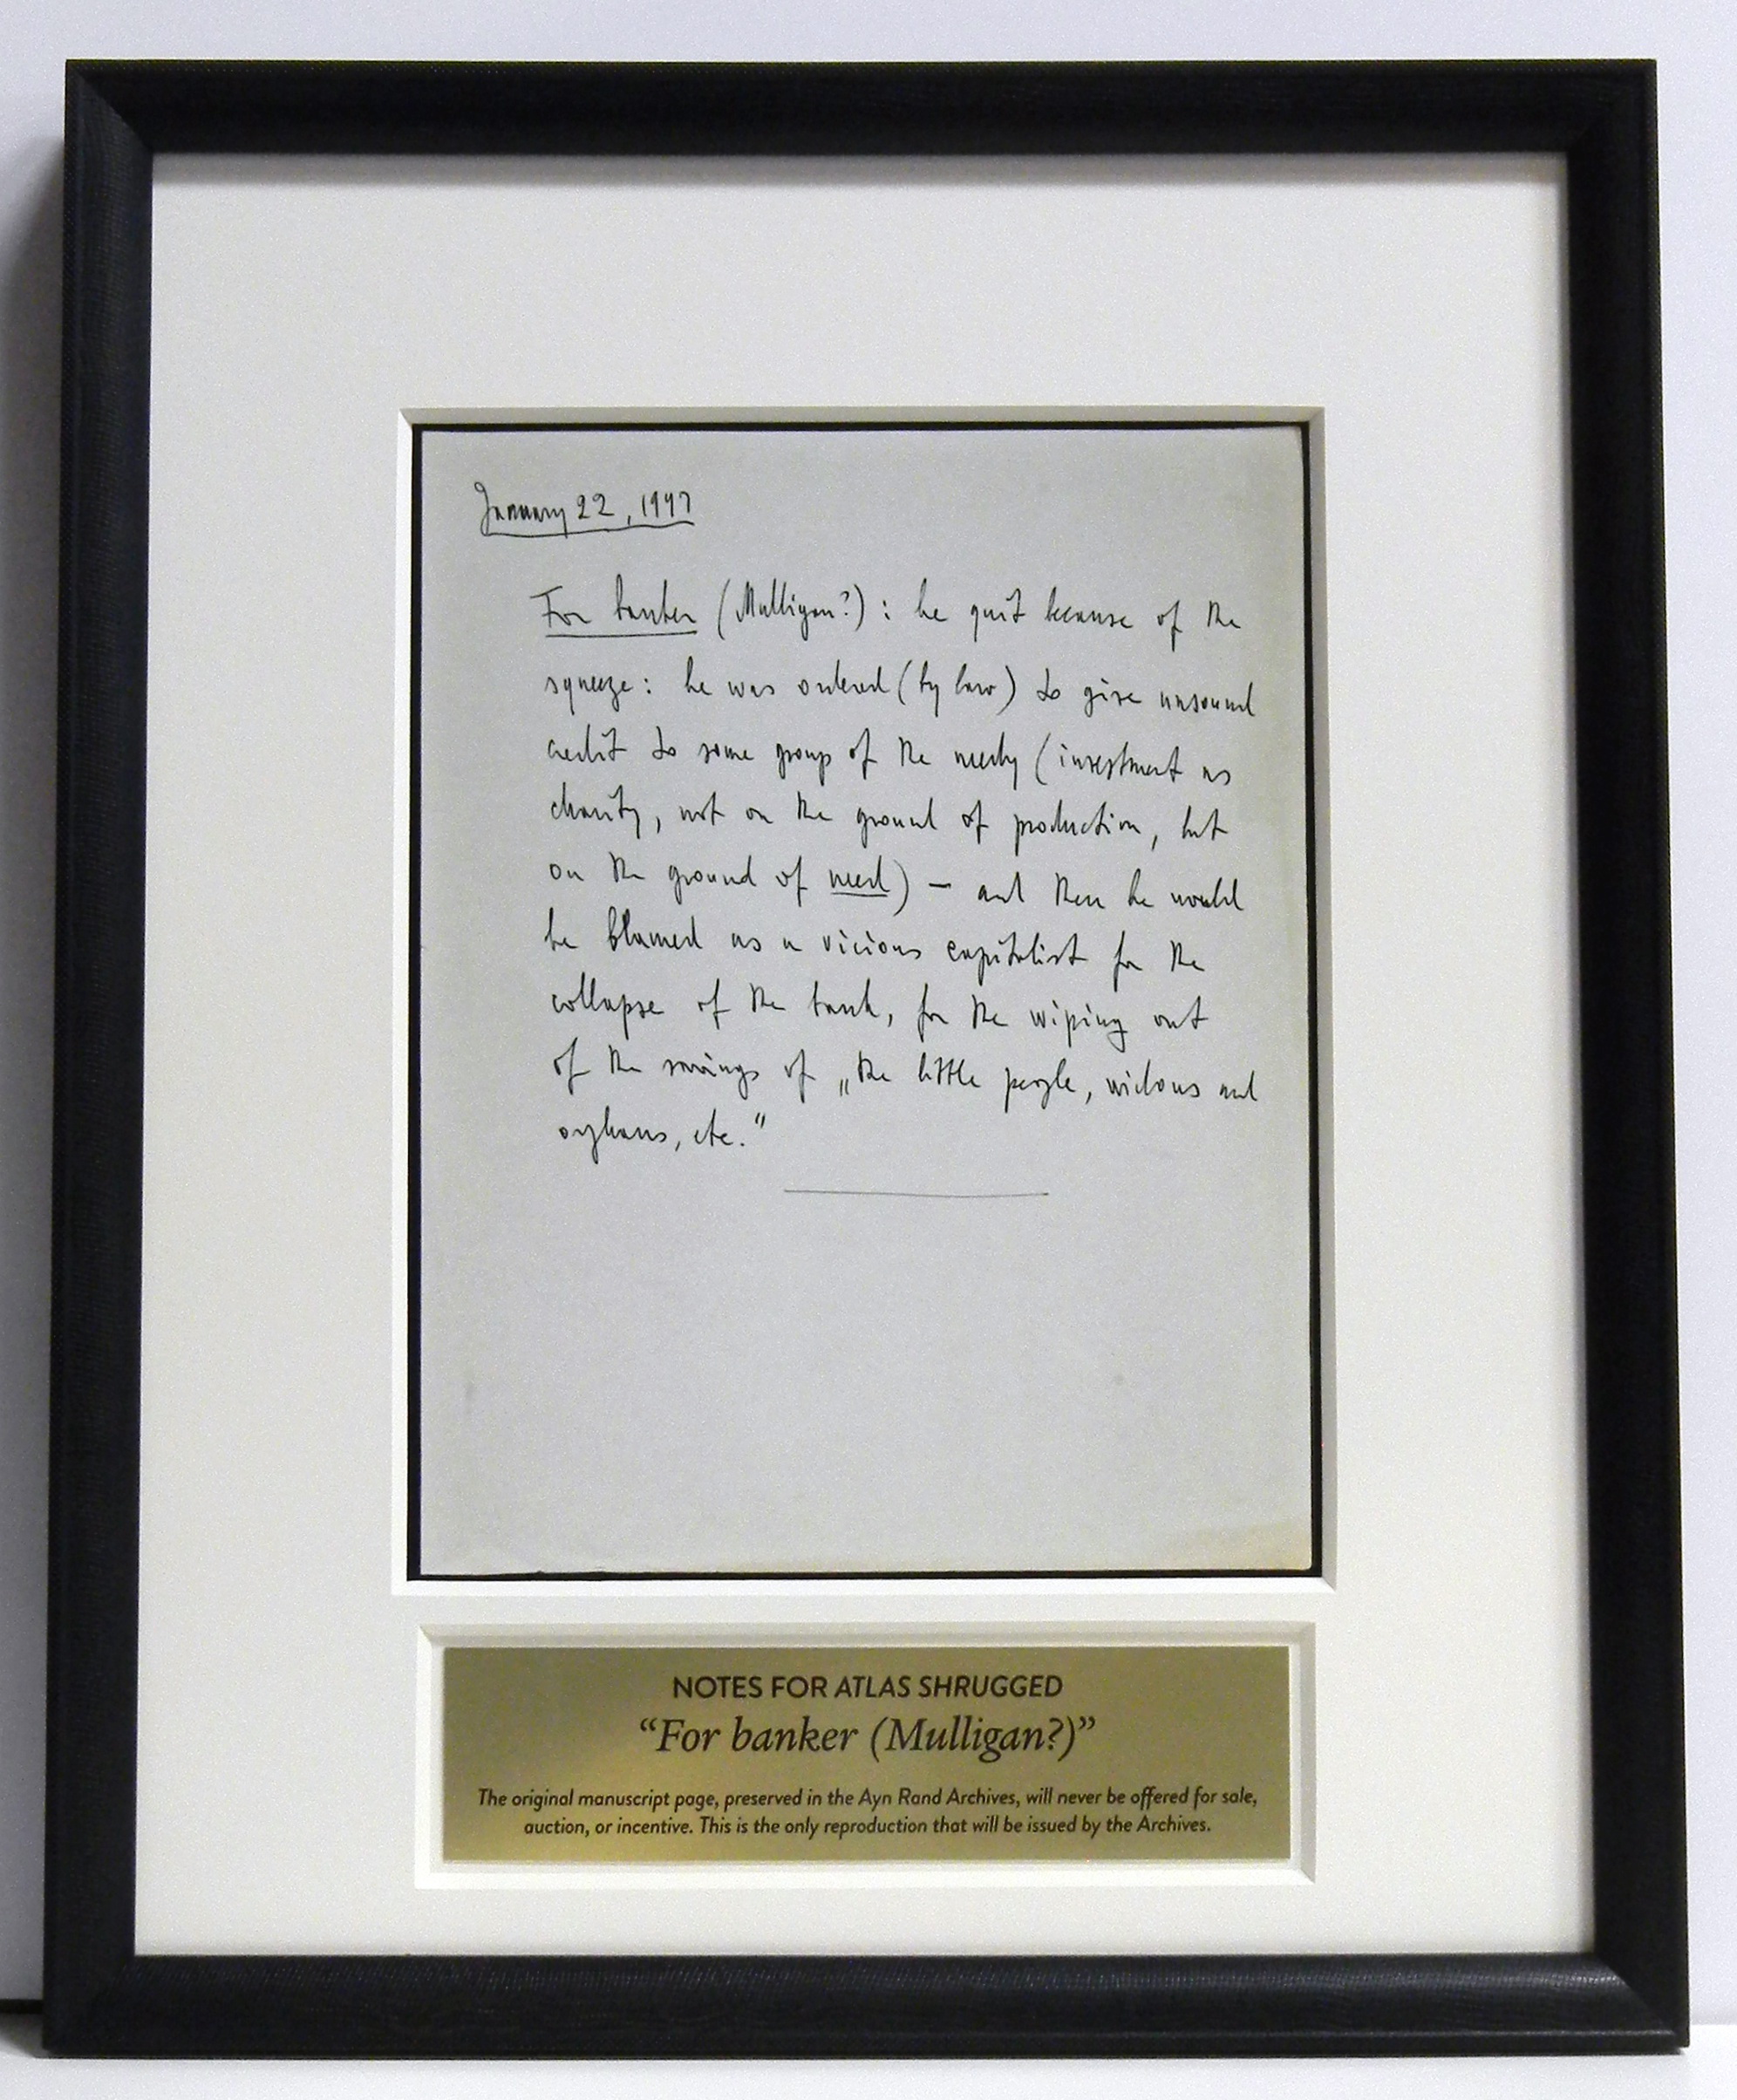 atlas shrugged revolution dinner auction online registration only one that will ever be offered by the ayn rand archives thus this single reproduction is the closest anyone can ever come to owning the original